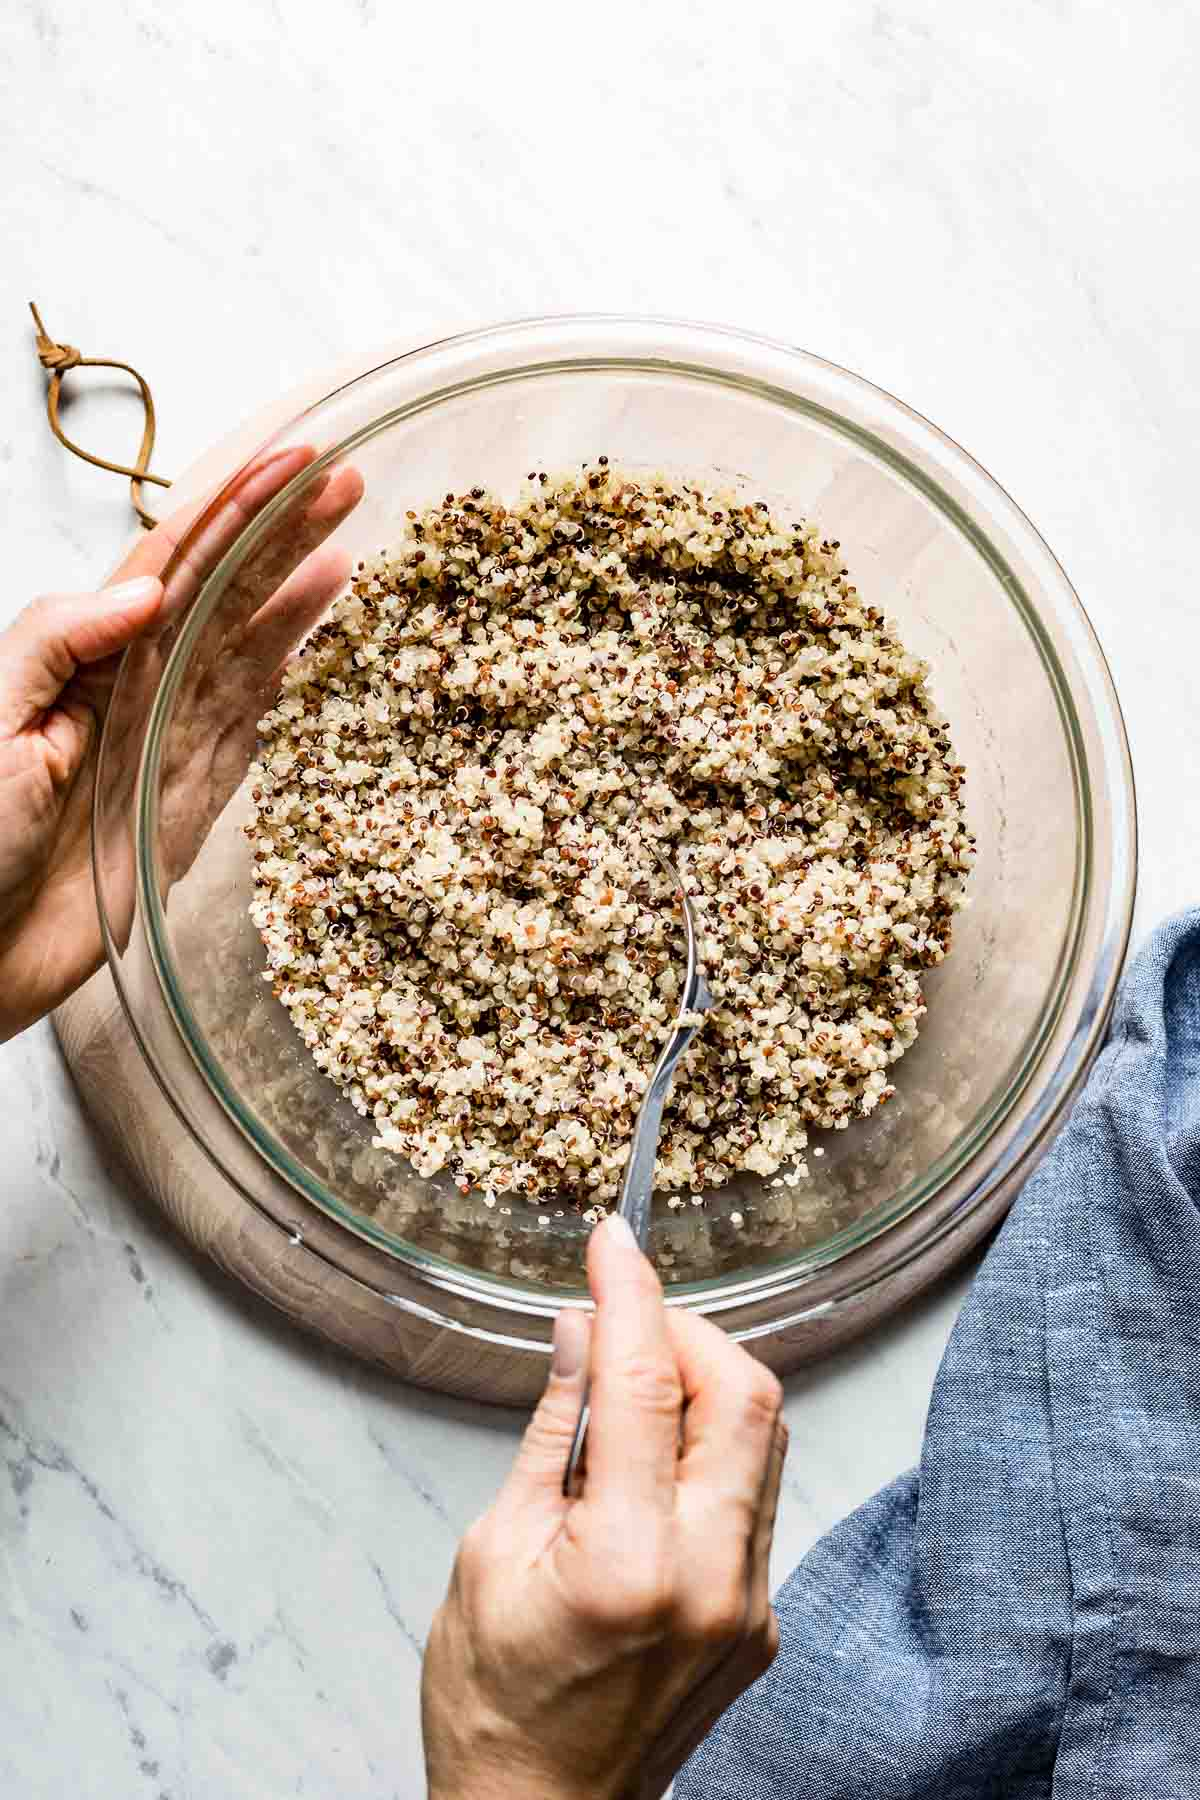 Microwave quinoa placed in a bowl and being fluffed by a woman